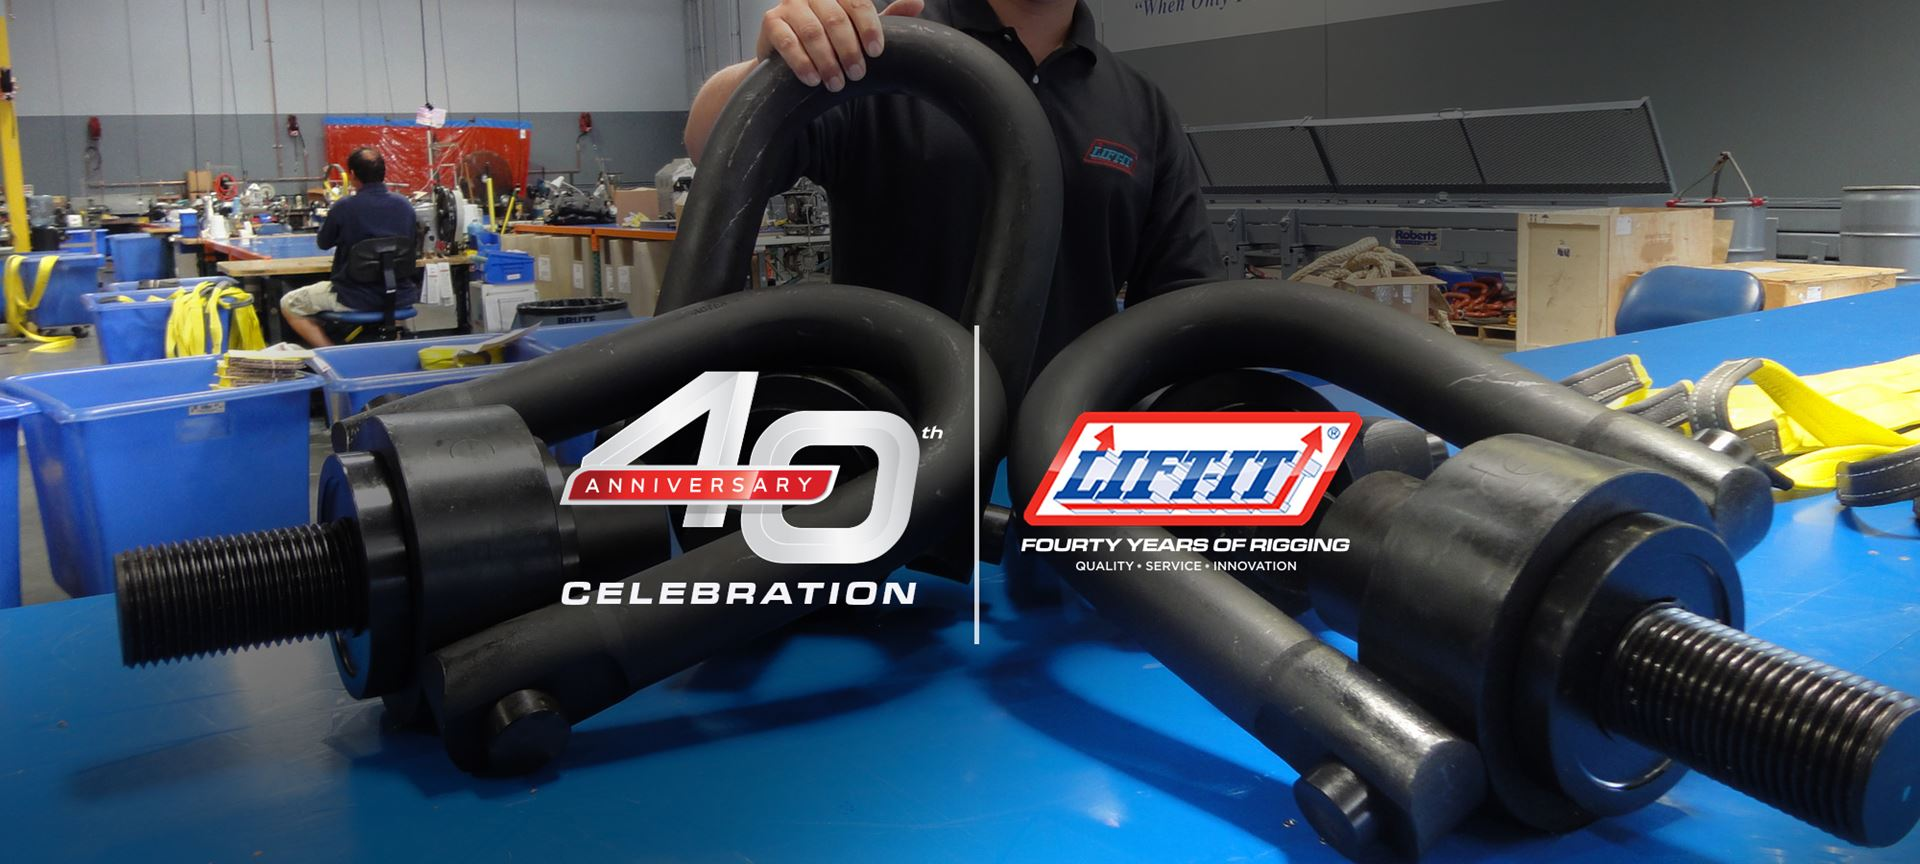 Lift-It® Manufacturing